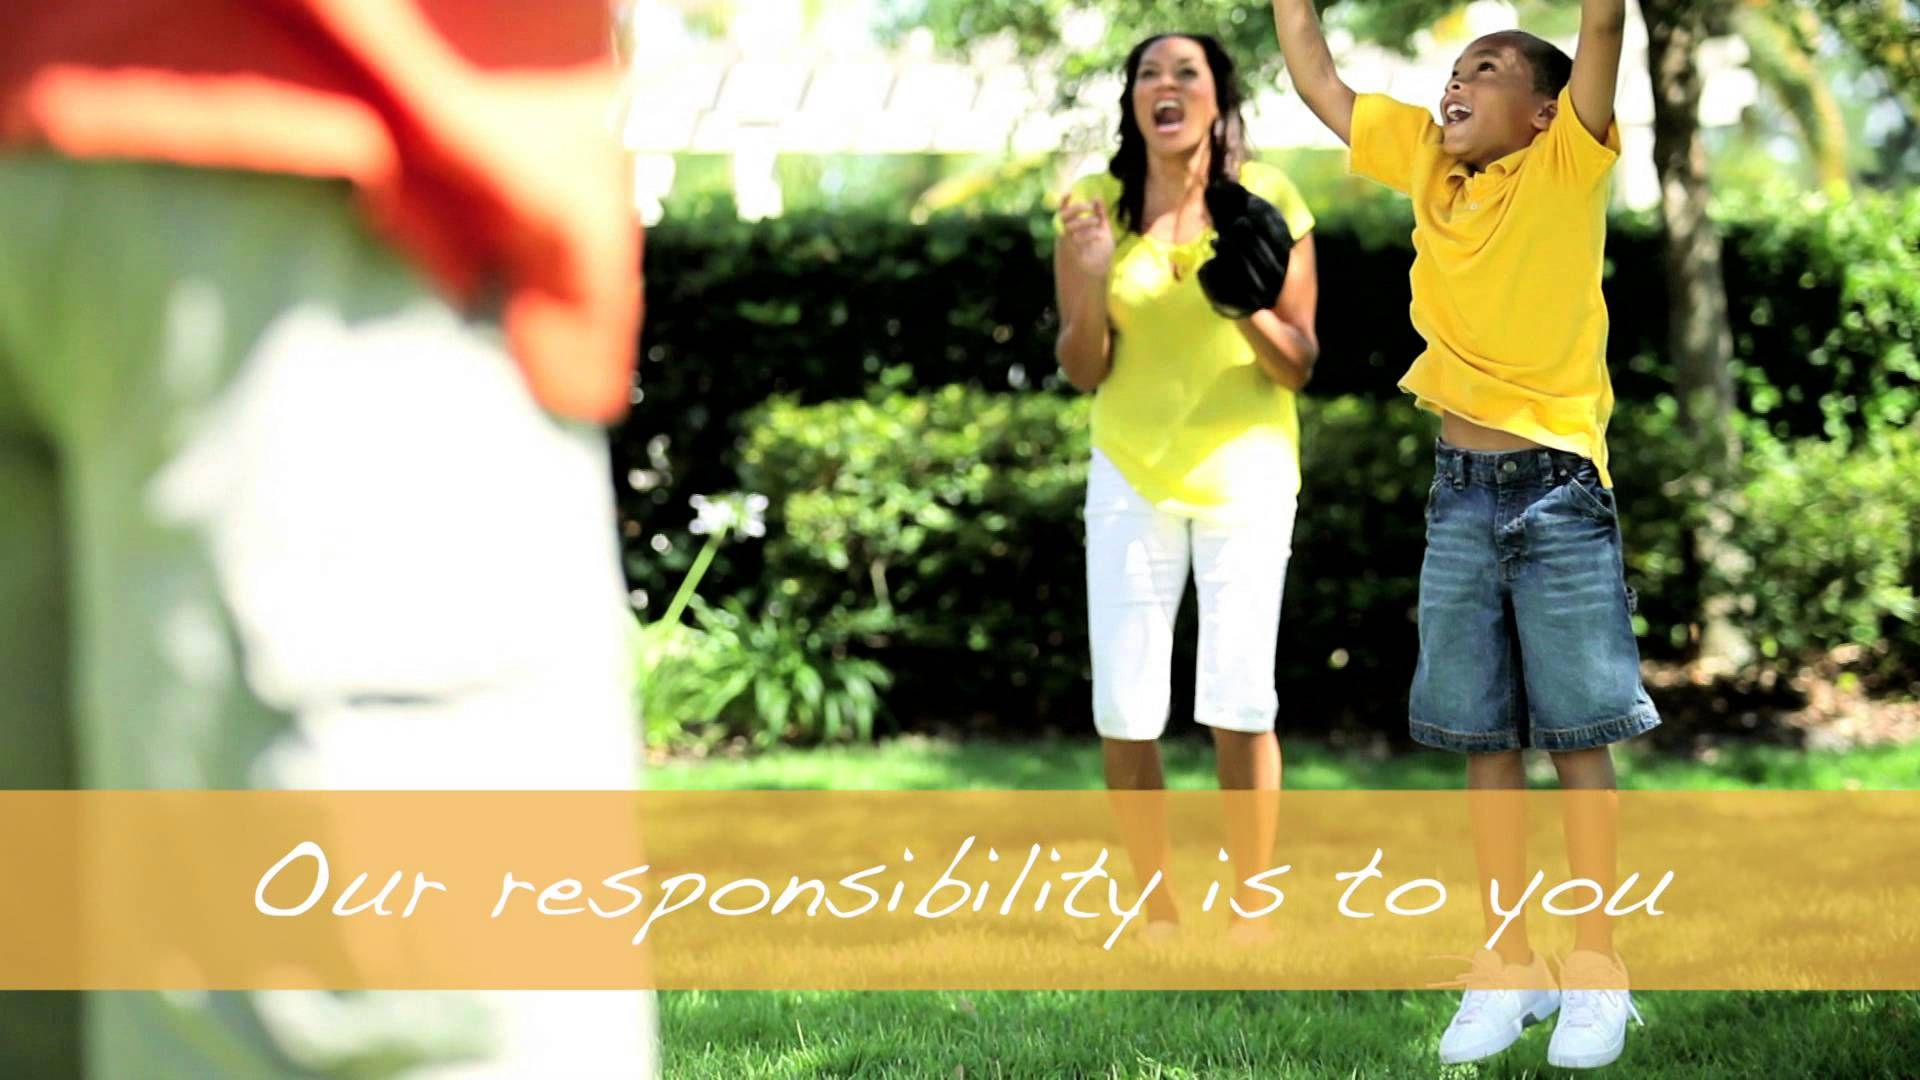 Franklin mutual insurance our responsibility is to you